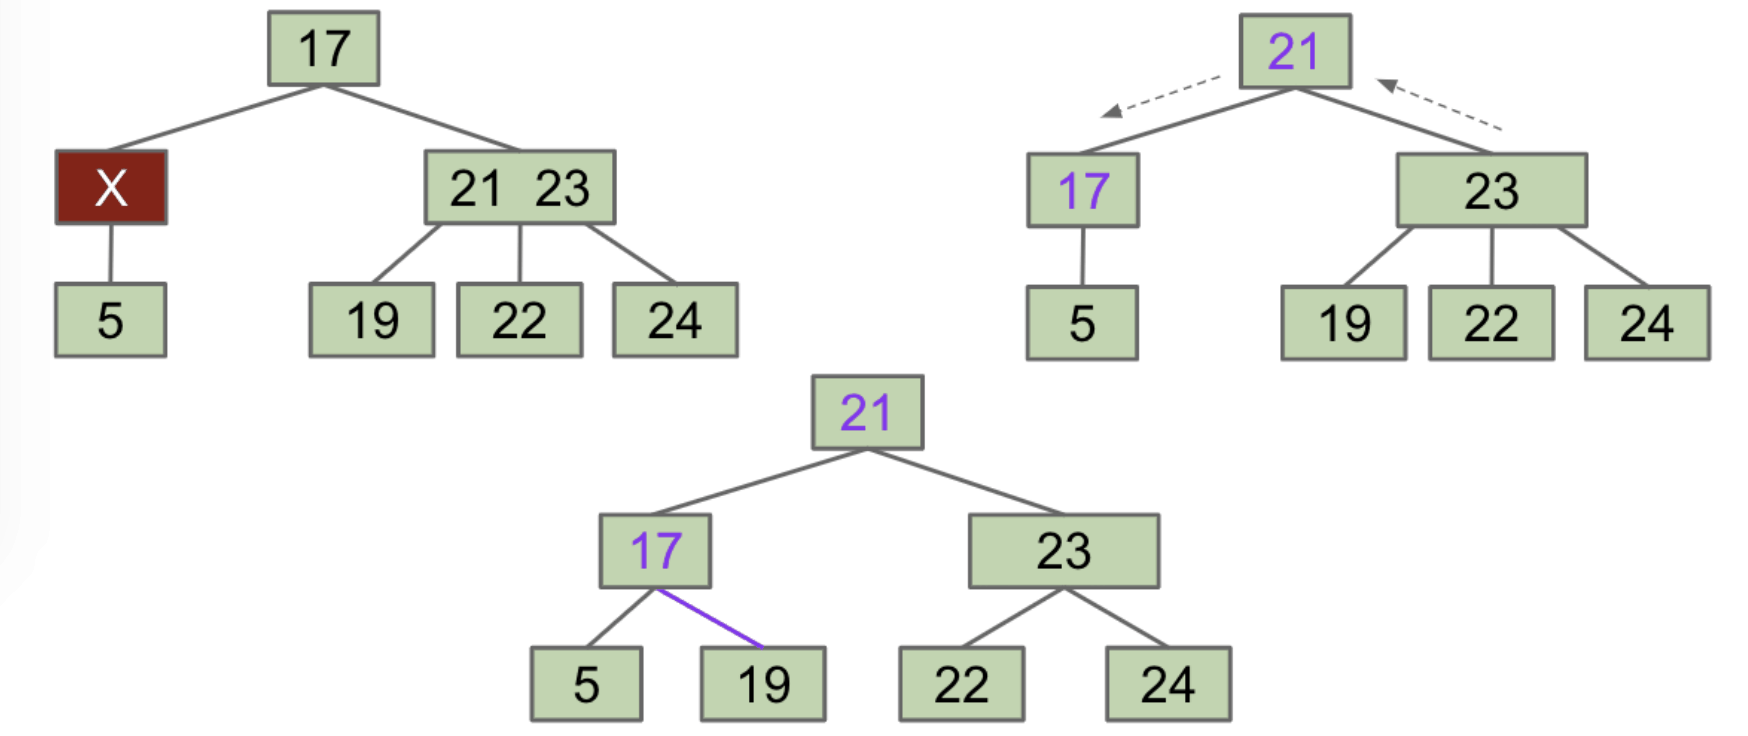 Try to fill in X in the diagram so that the result is a valid 2-3 tree